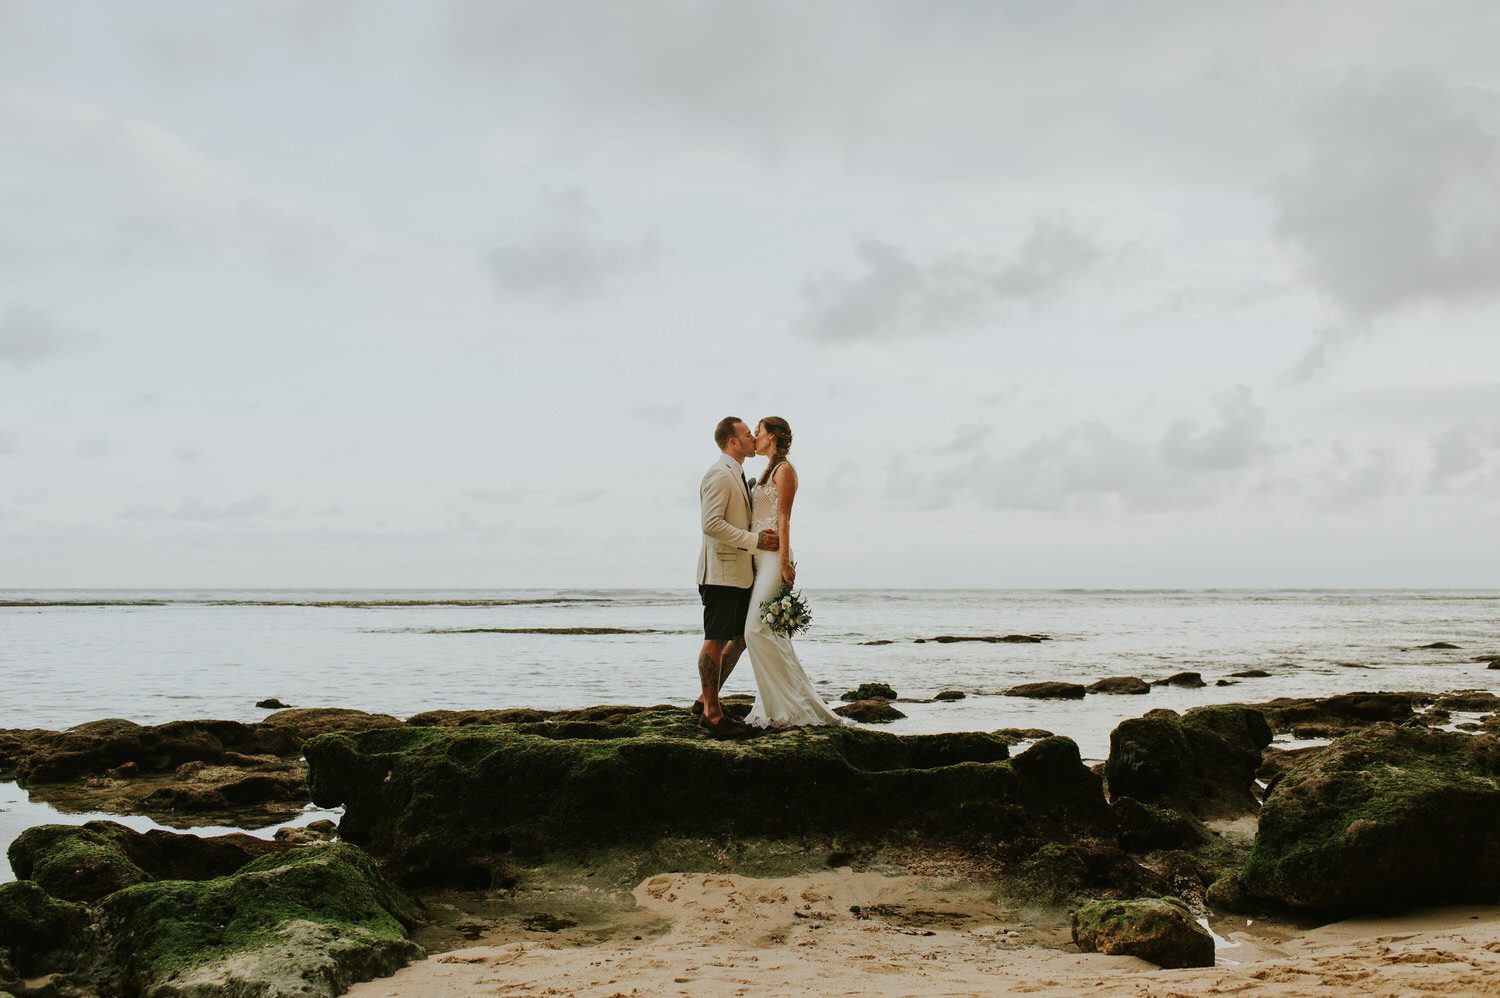 bali wedding destination - the ungasan wedding - bali wedding photographer - diktatphotography - aimee + blake wedding - 108